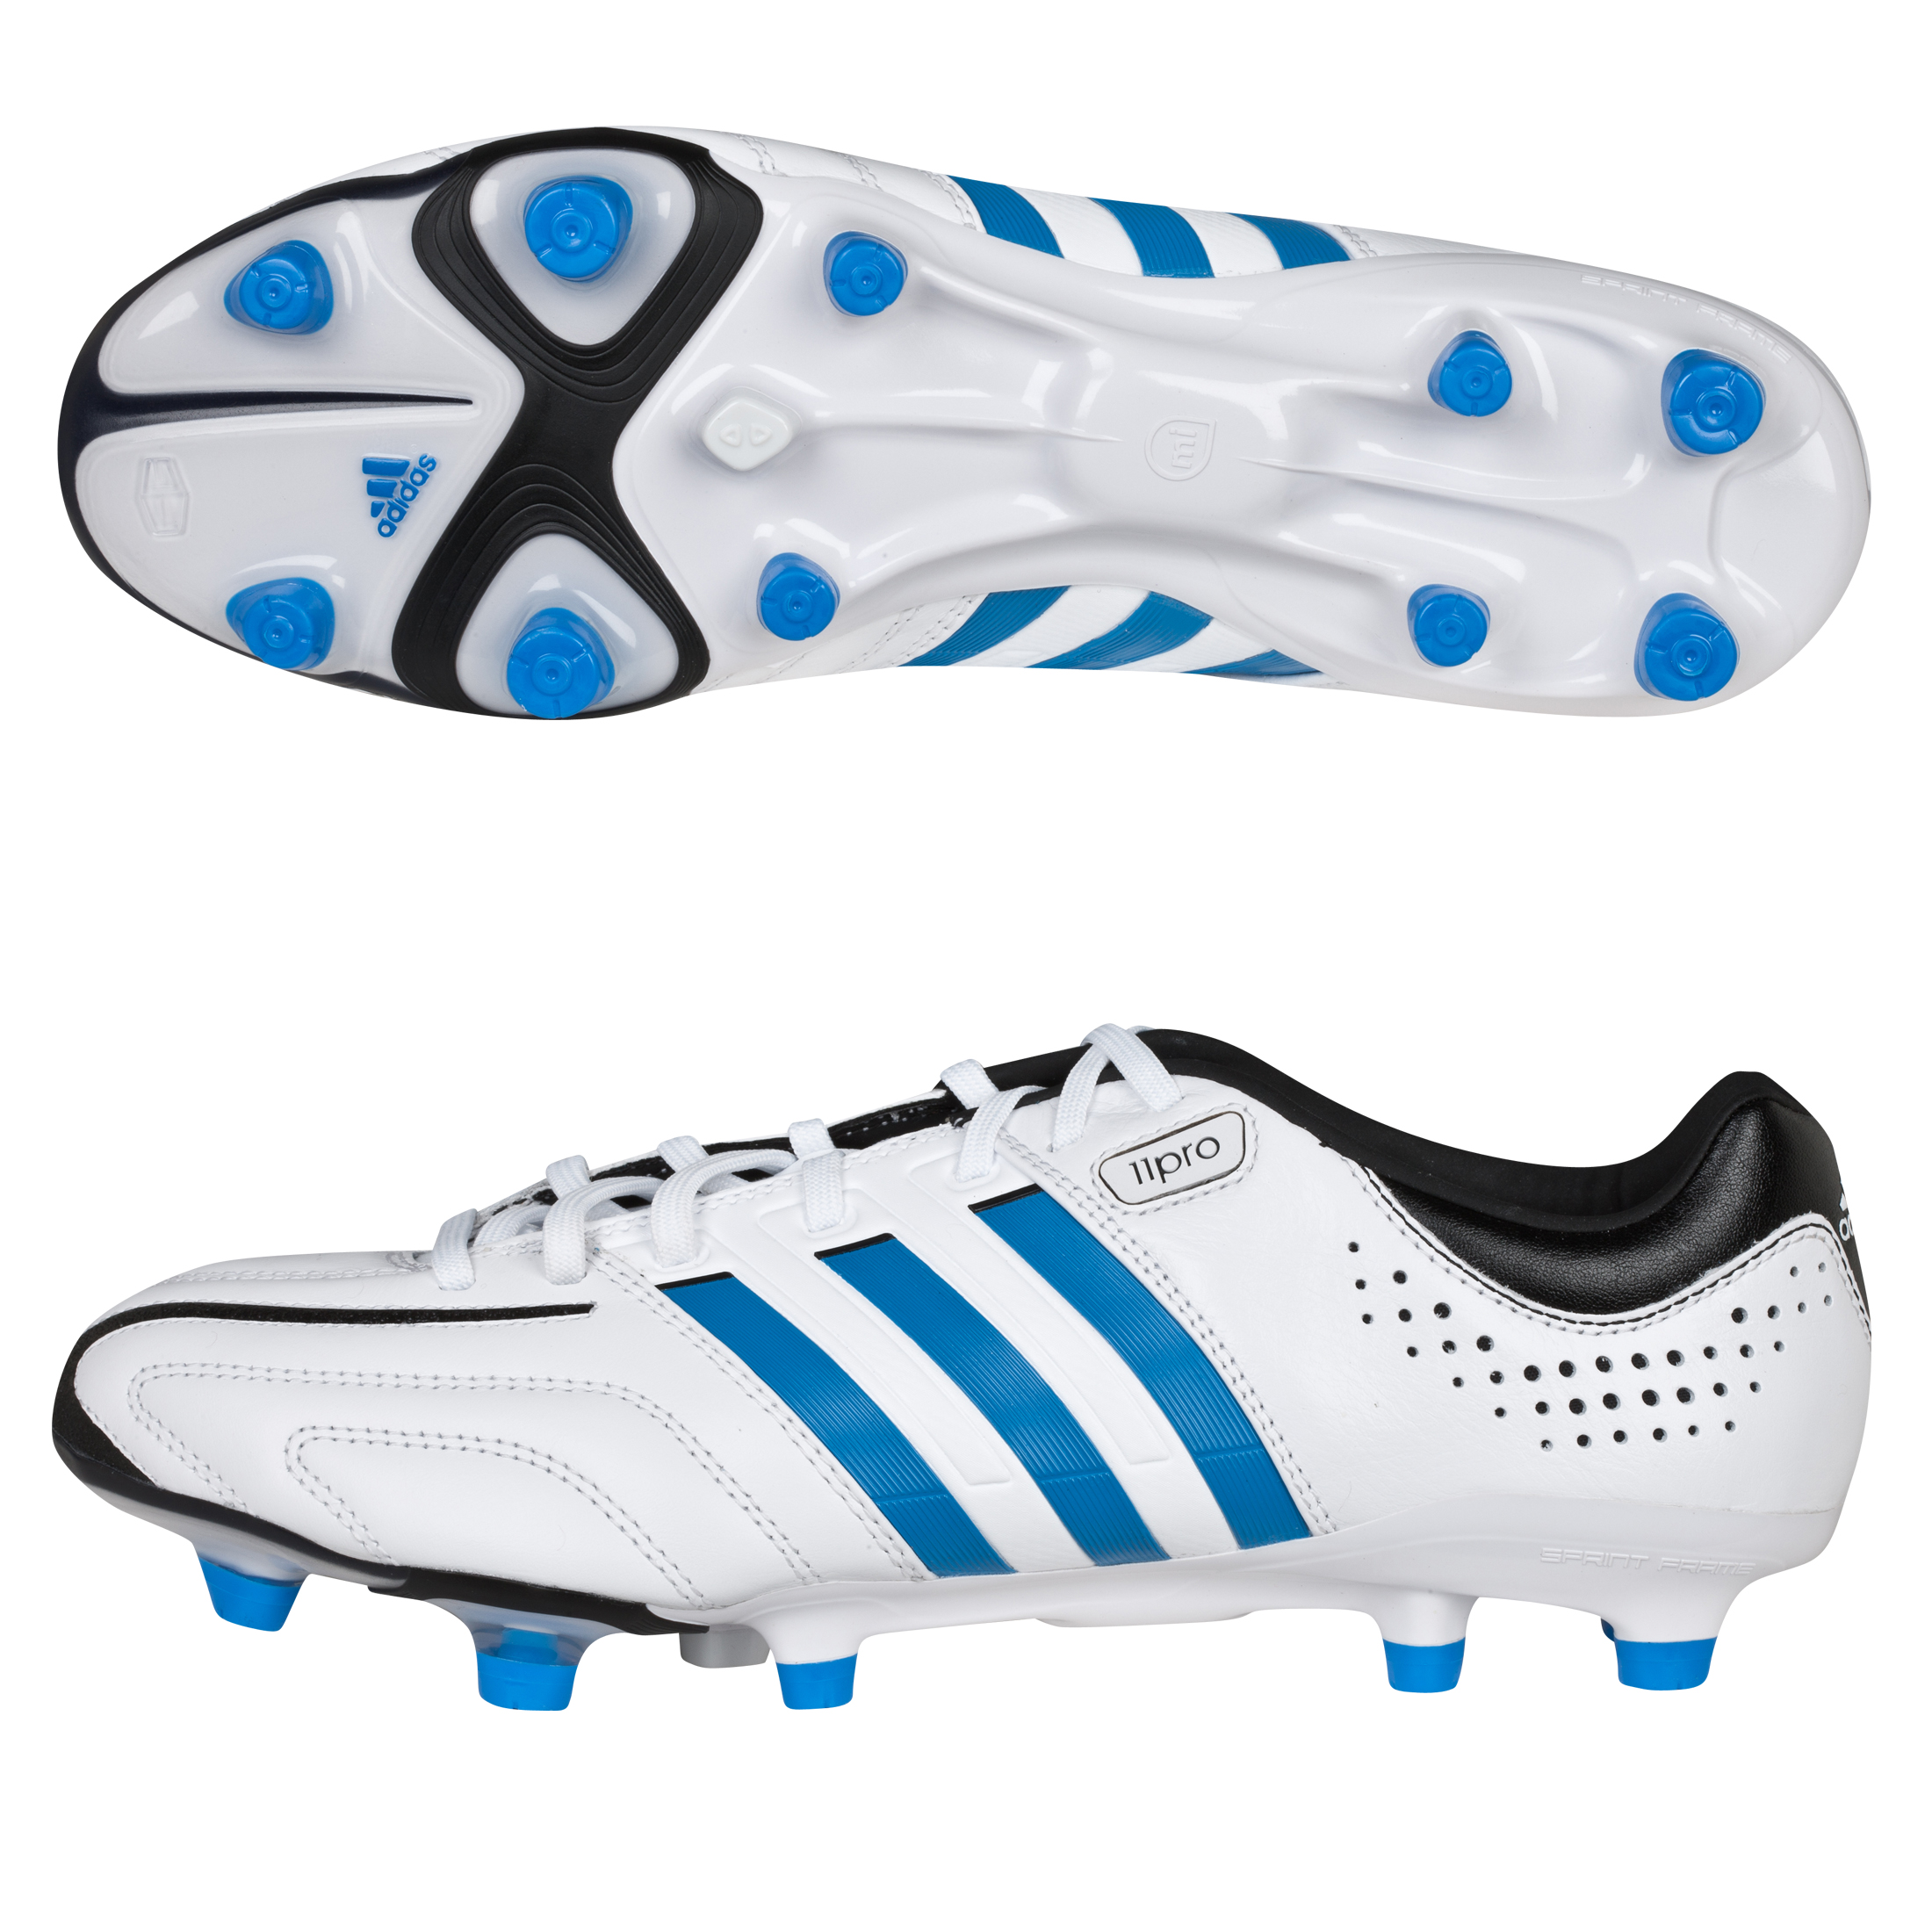 Adipure 11Pro TRX White/Bright Blue/Black